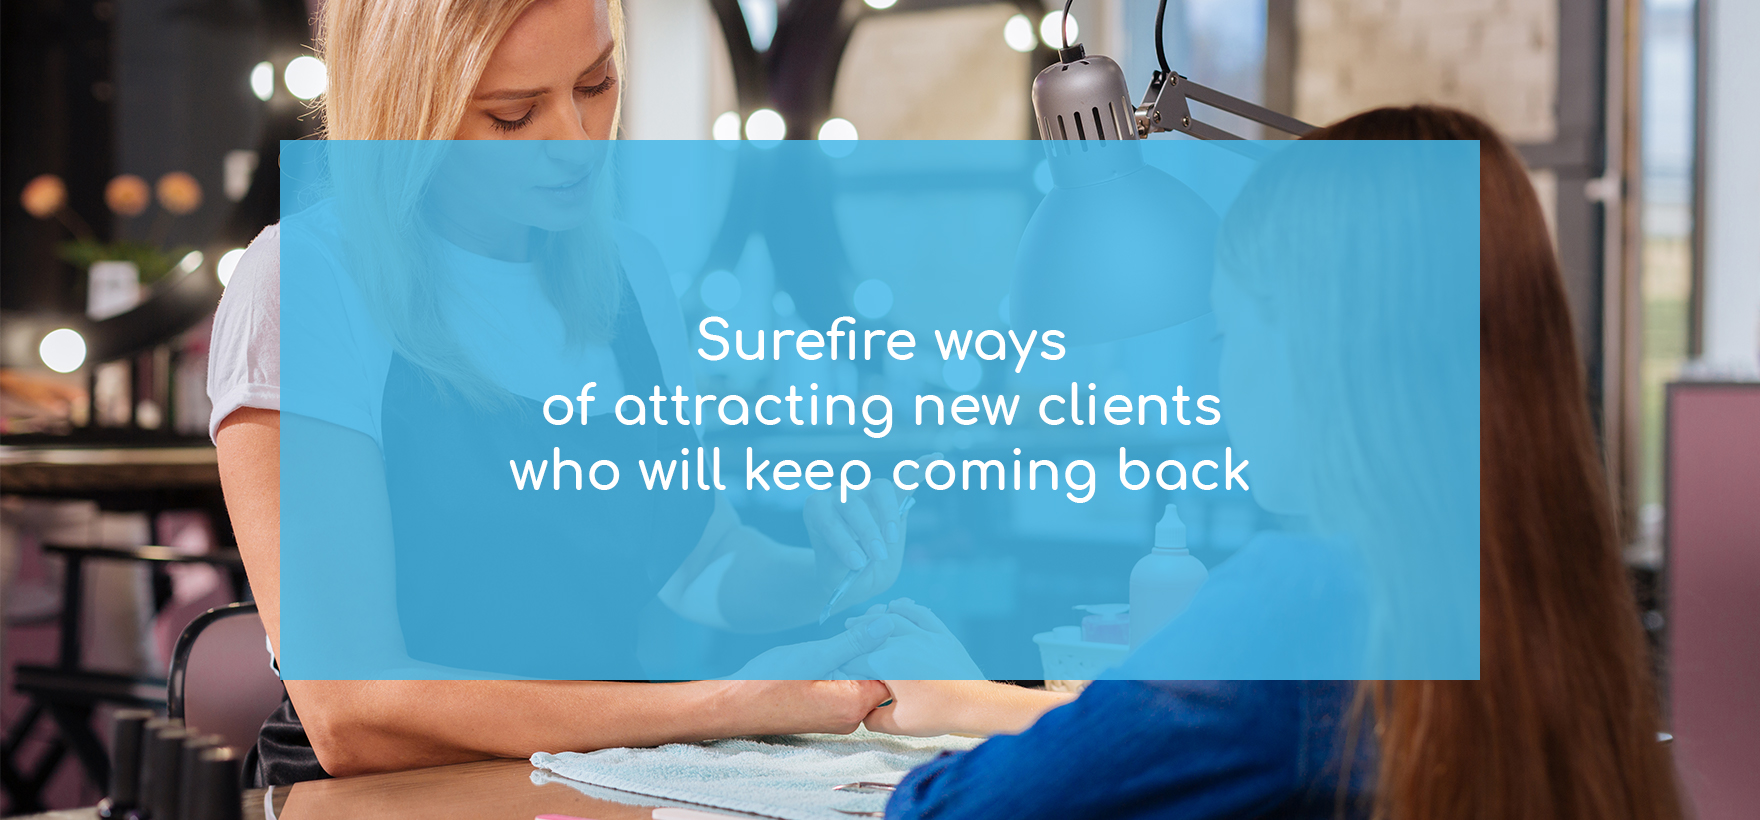 How to get more clients in a salon. 6 surefire ways of attracting new clients who will keep coming back